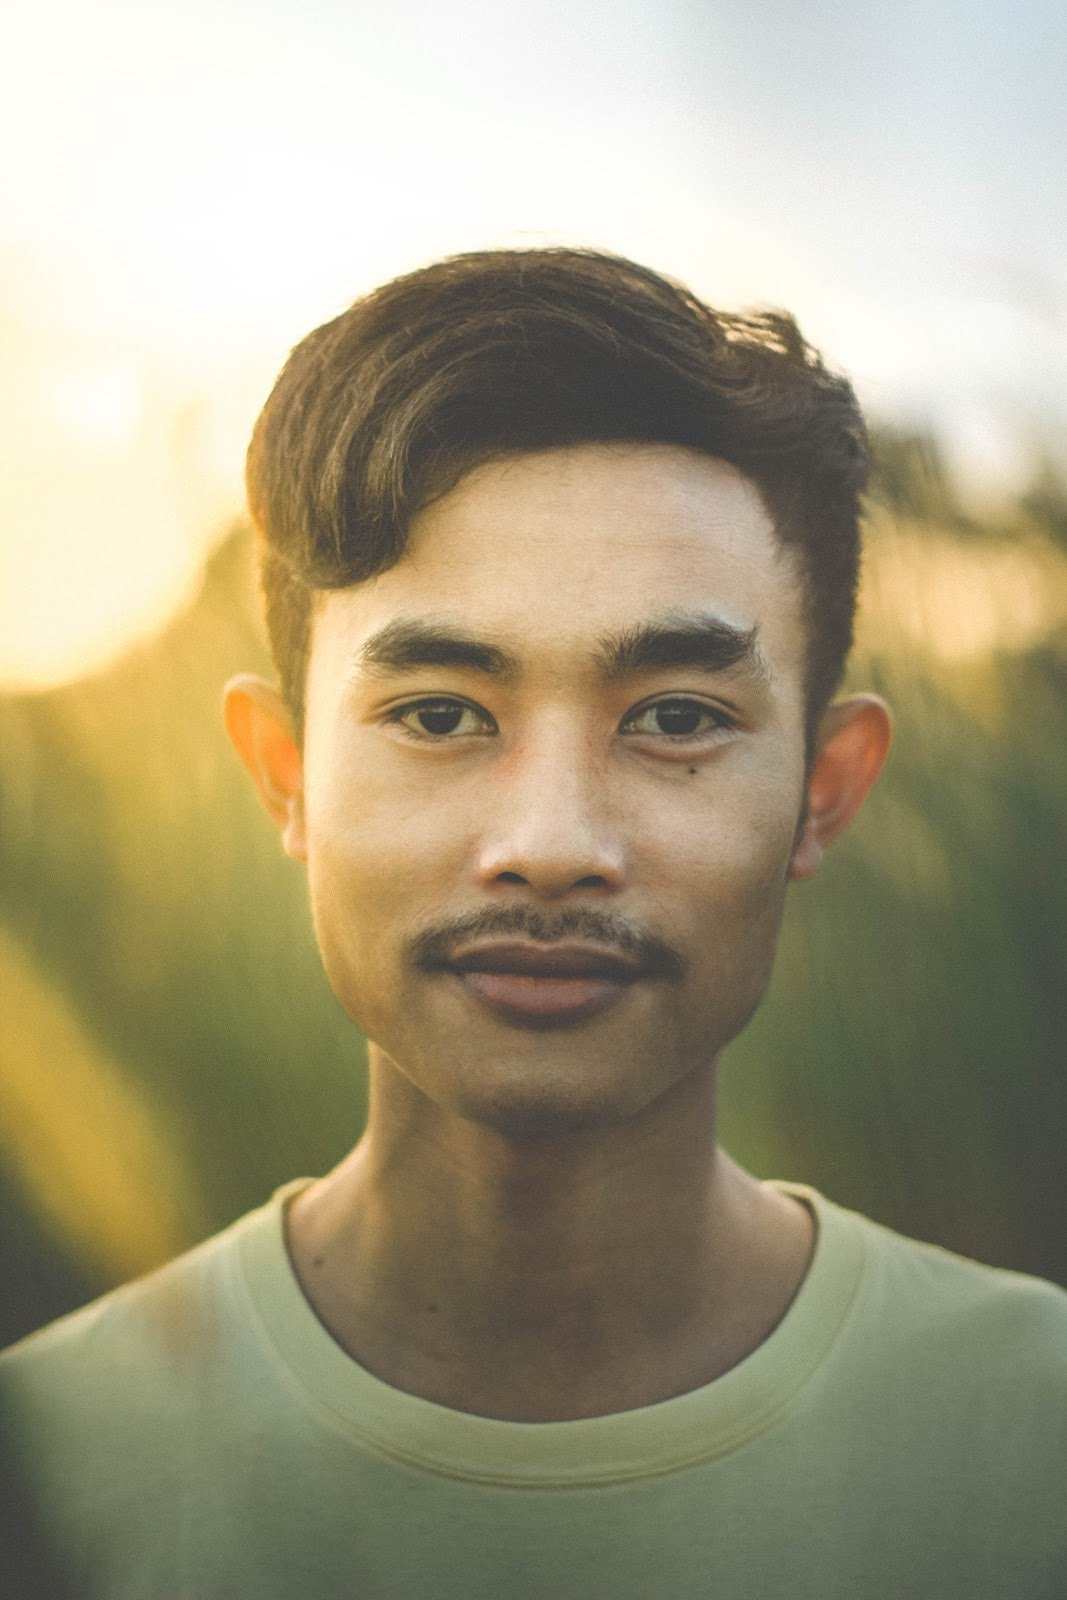 Portrait of a young man during the golden hour by Ajun